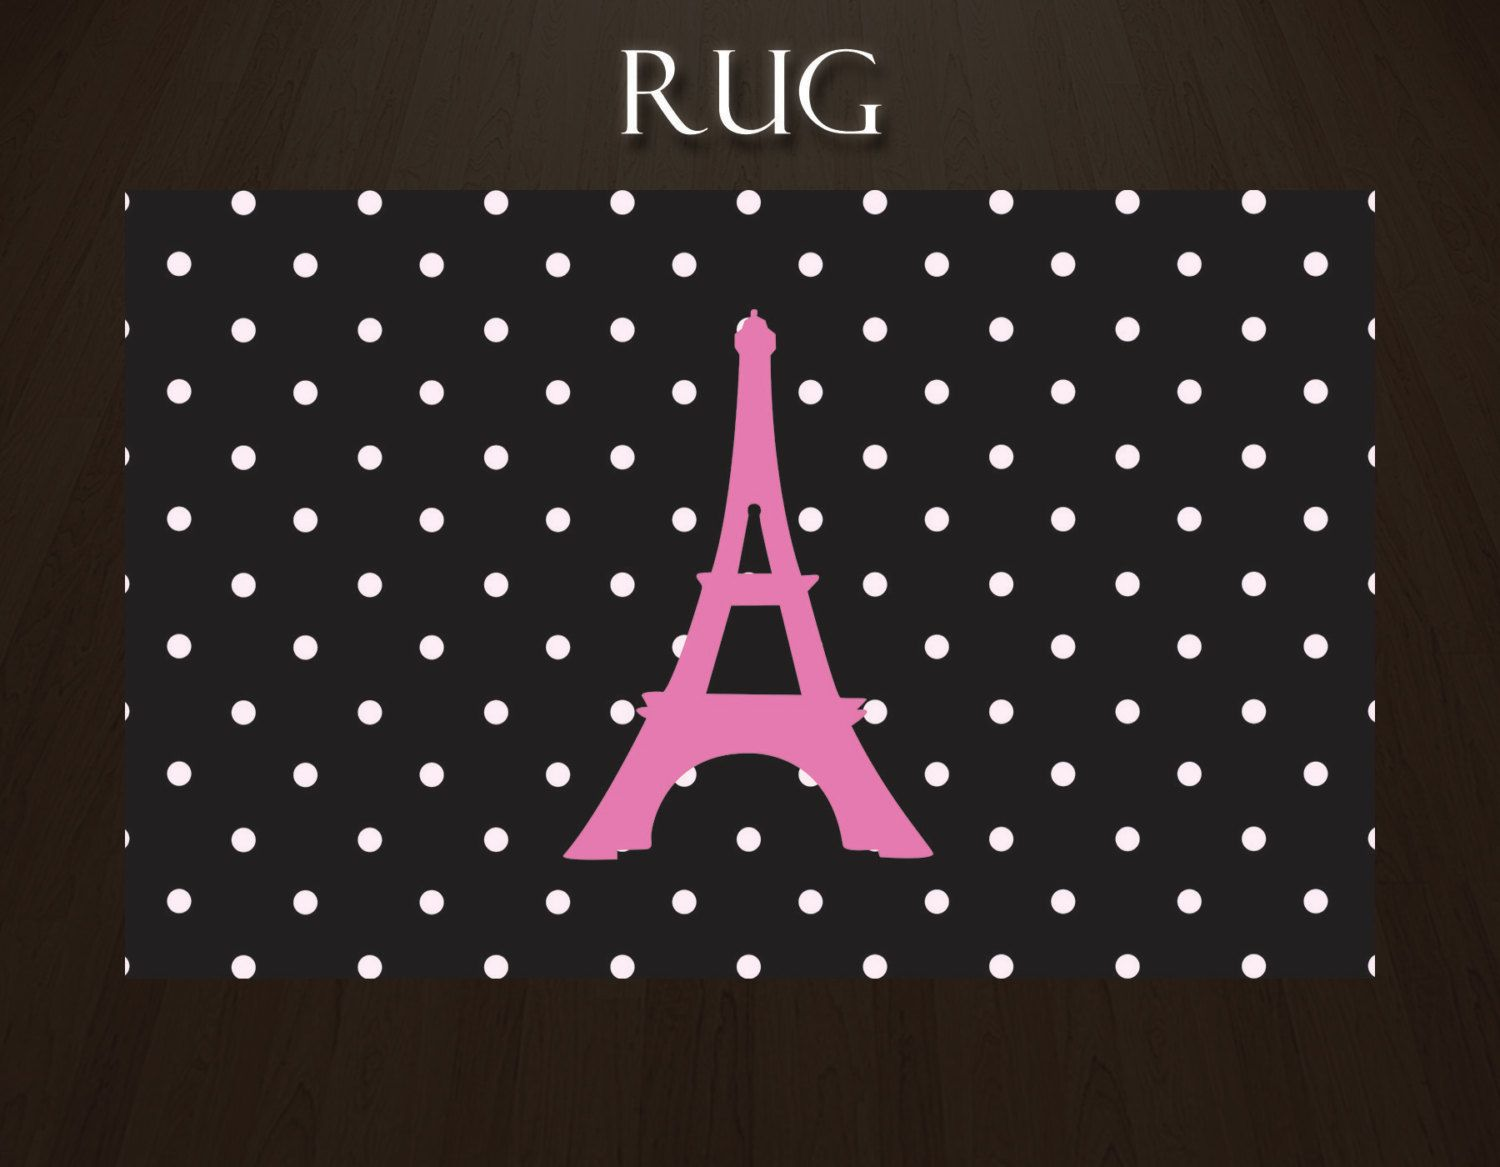 Polka Dot Area Rug Paris With Eiffel Tower Plush Pink